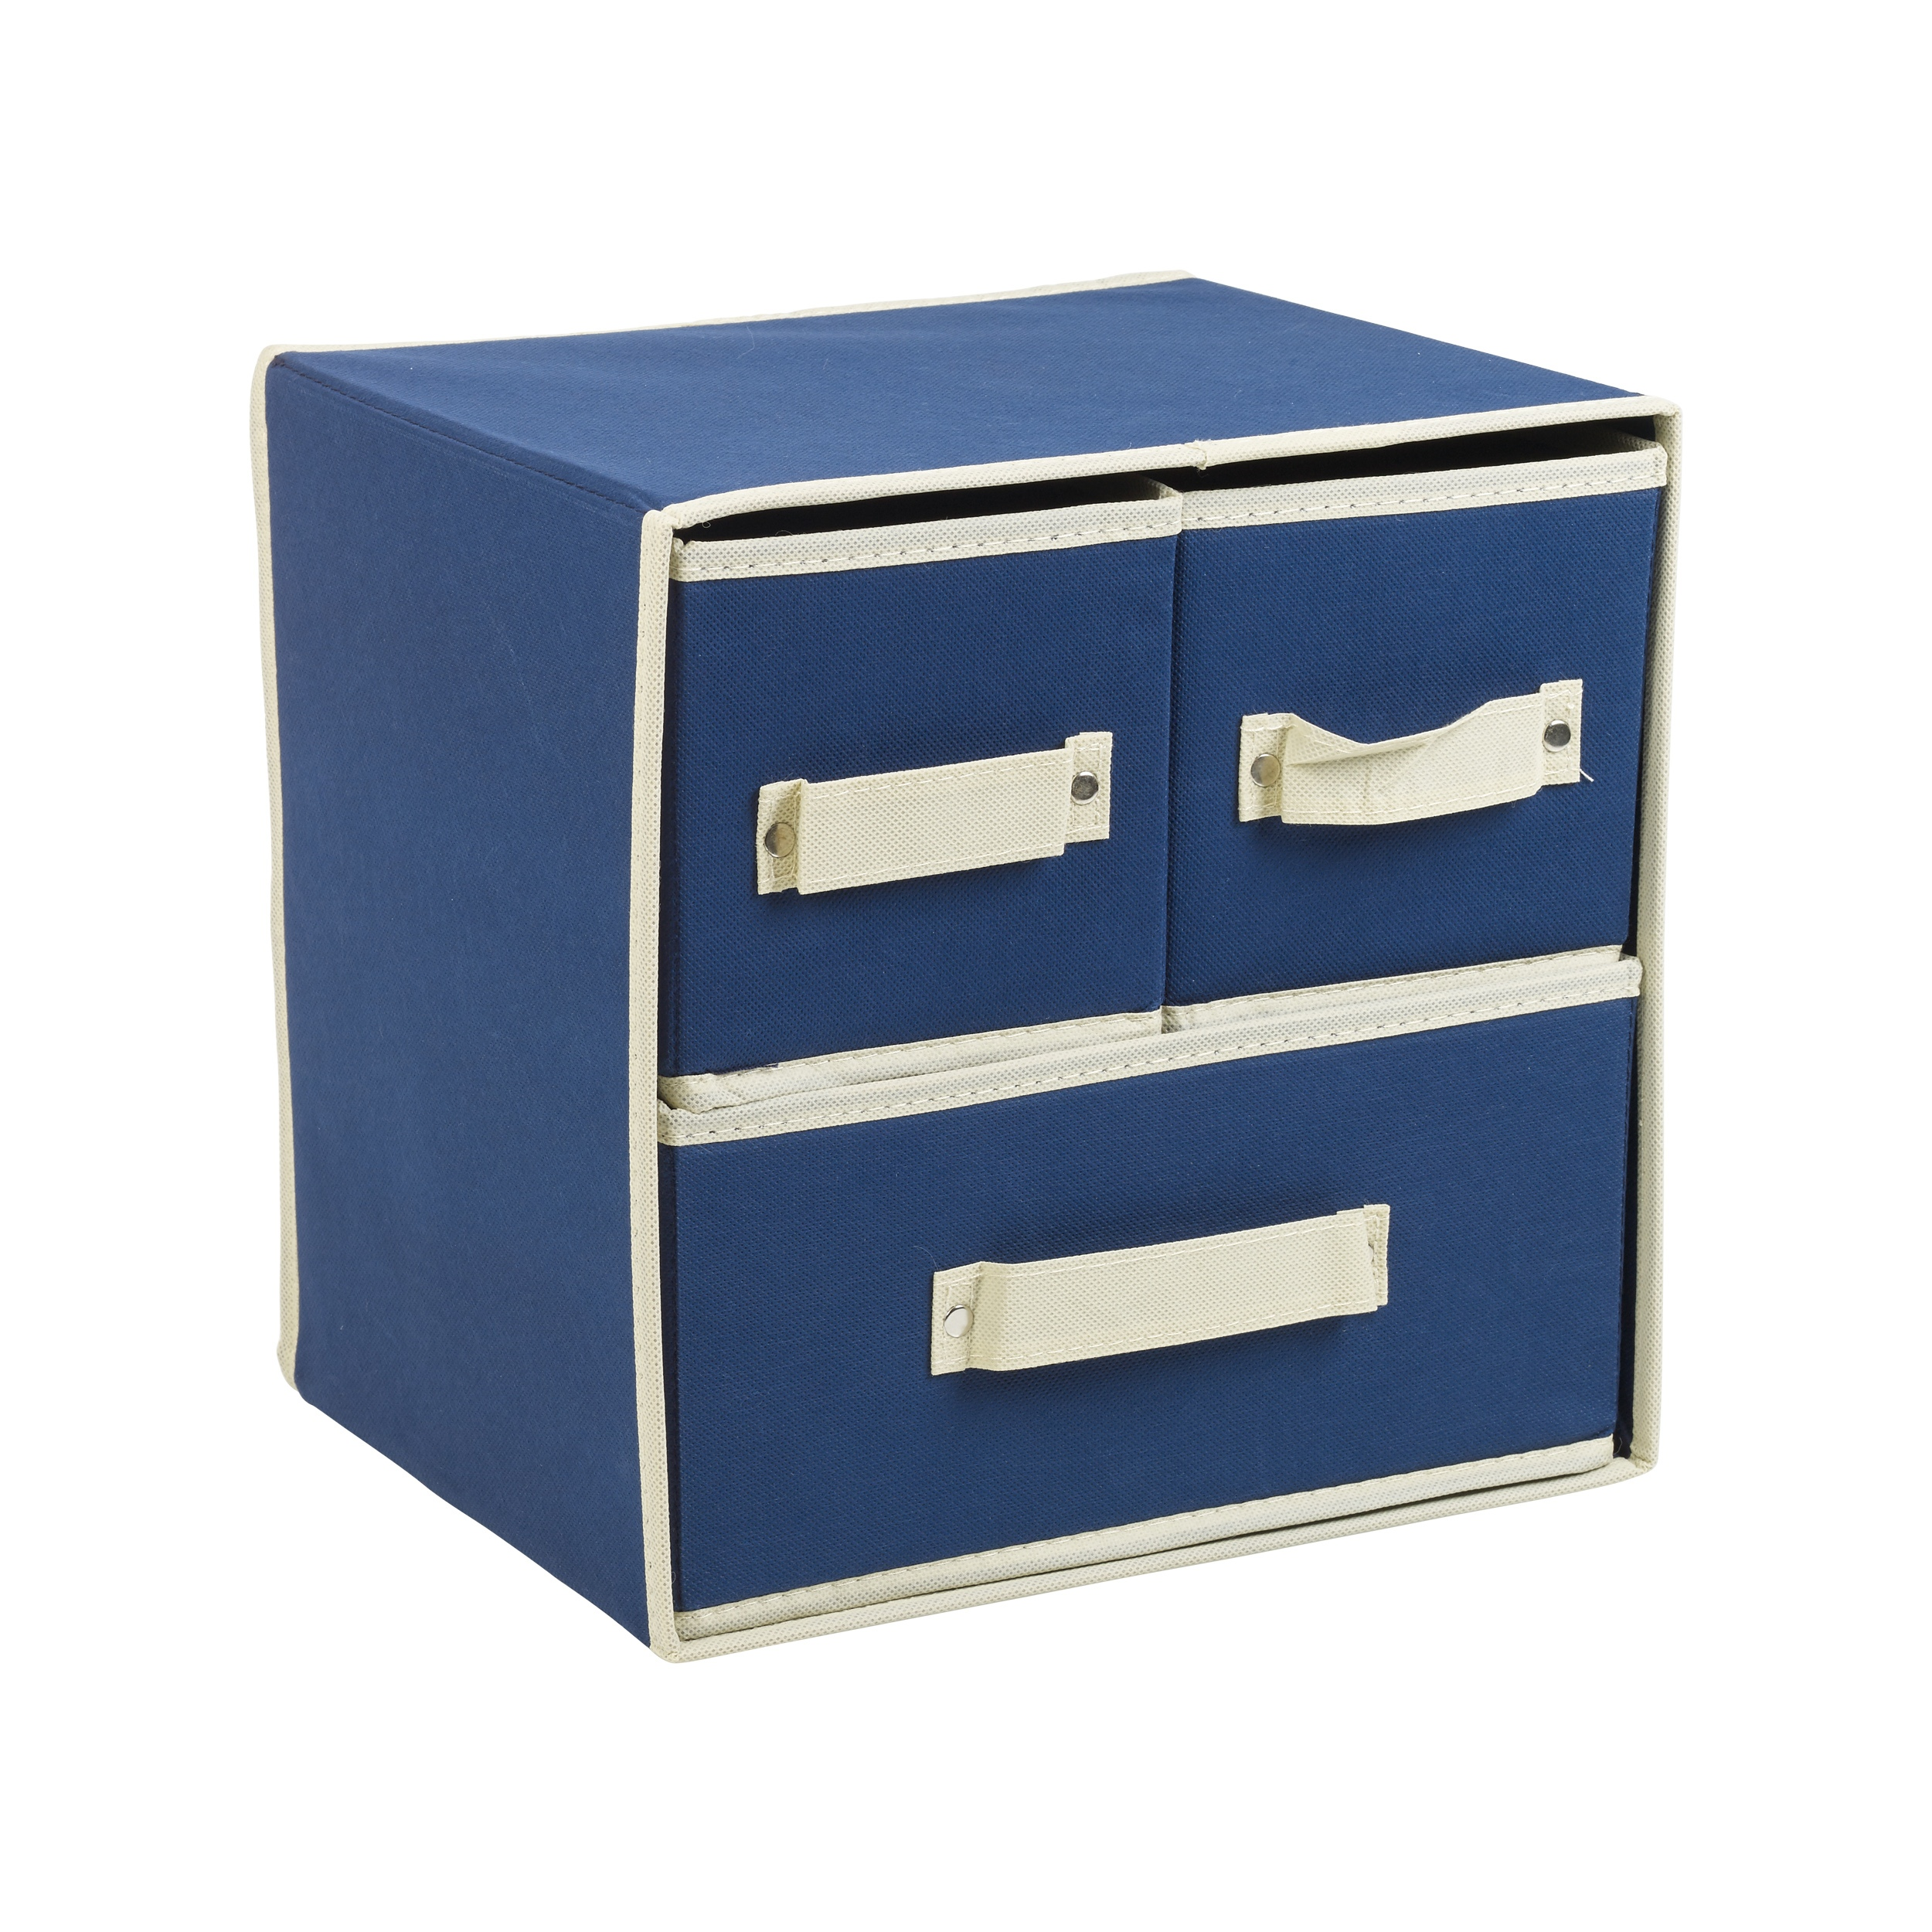 Collapsible Fabric 3 Drawer Storage Boxes Containers Bits. L Shaped Desk Target. Cigarette Table. Amazon Small Computer Desk. Table Rentals Las Vegas. Galant Desk Review. Kitchen Nook Table. Hotel Front Desk Software. Art Tables For Sale